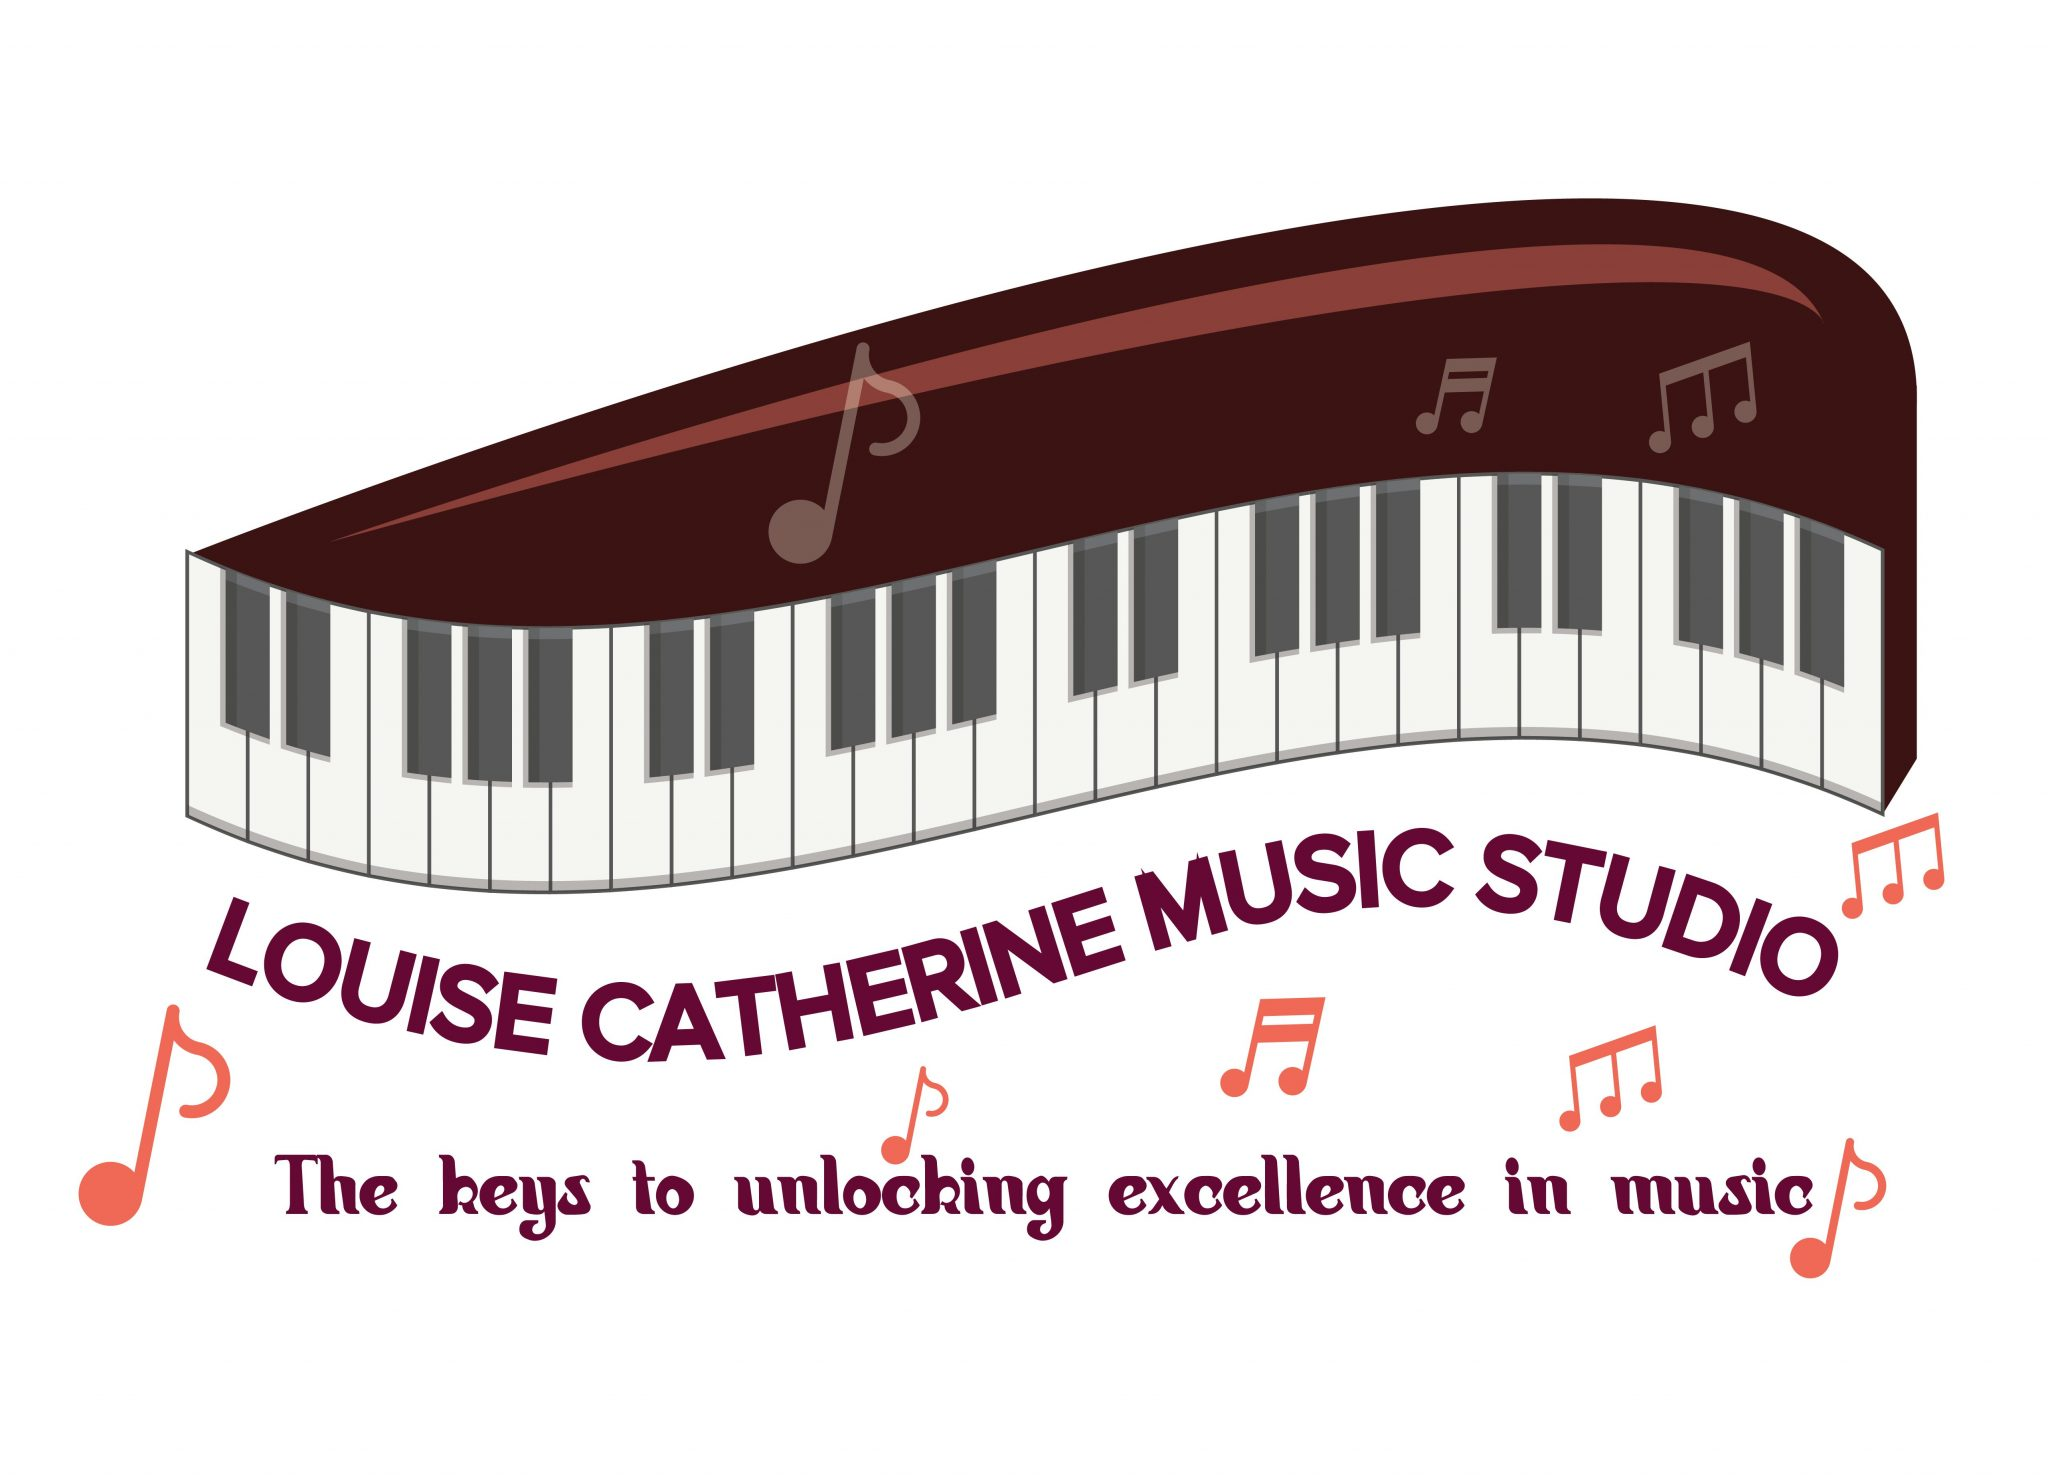 Louise Catherine Music Studio